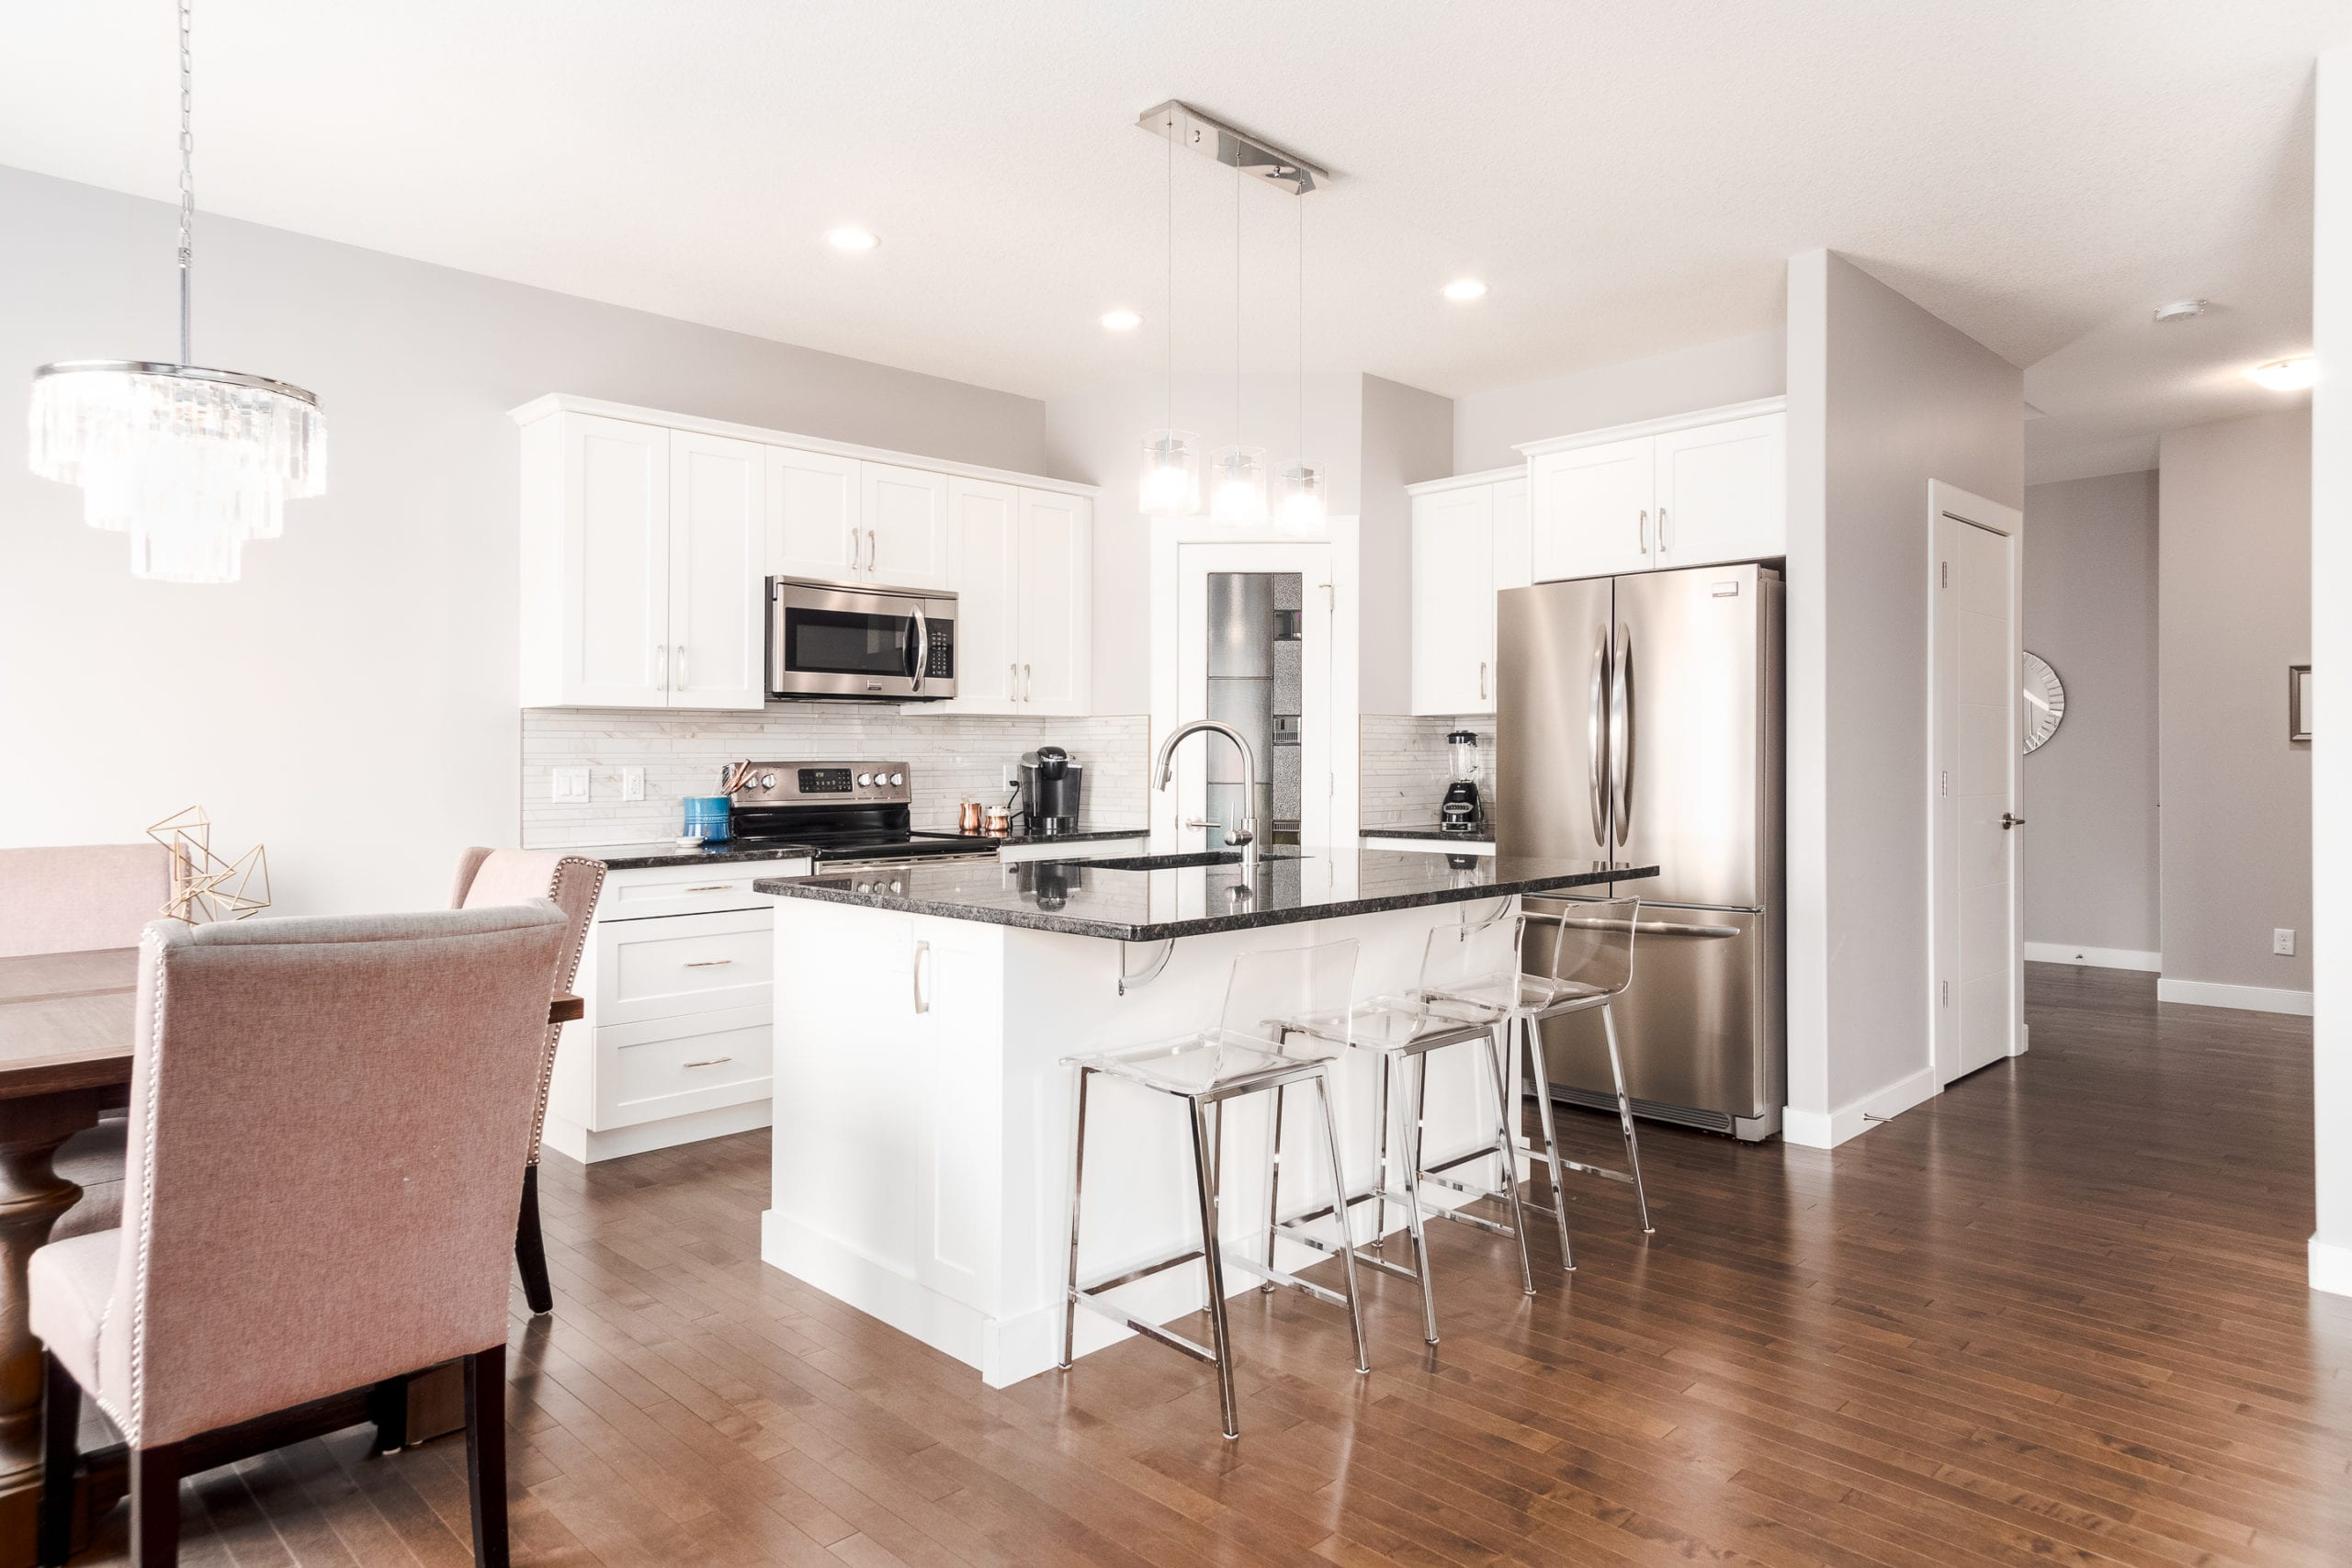 Hello Gorgeous - 1306 Kings Heights Way SE, Airdrie AB. - Tara Molina Real Estate (6 of 53)